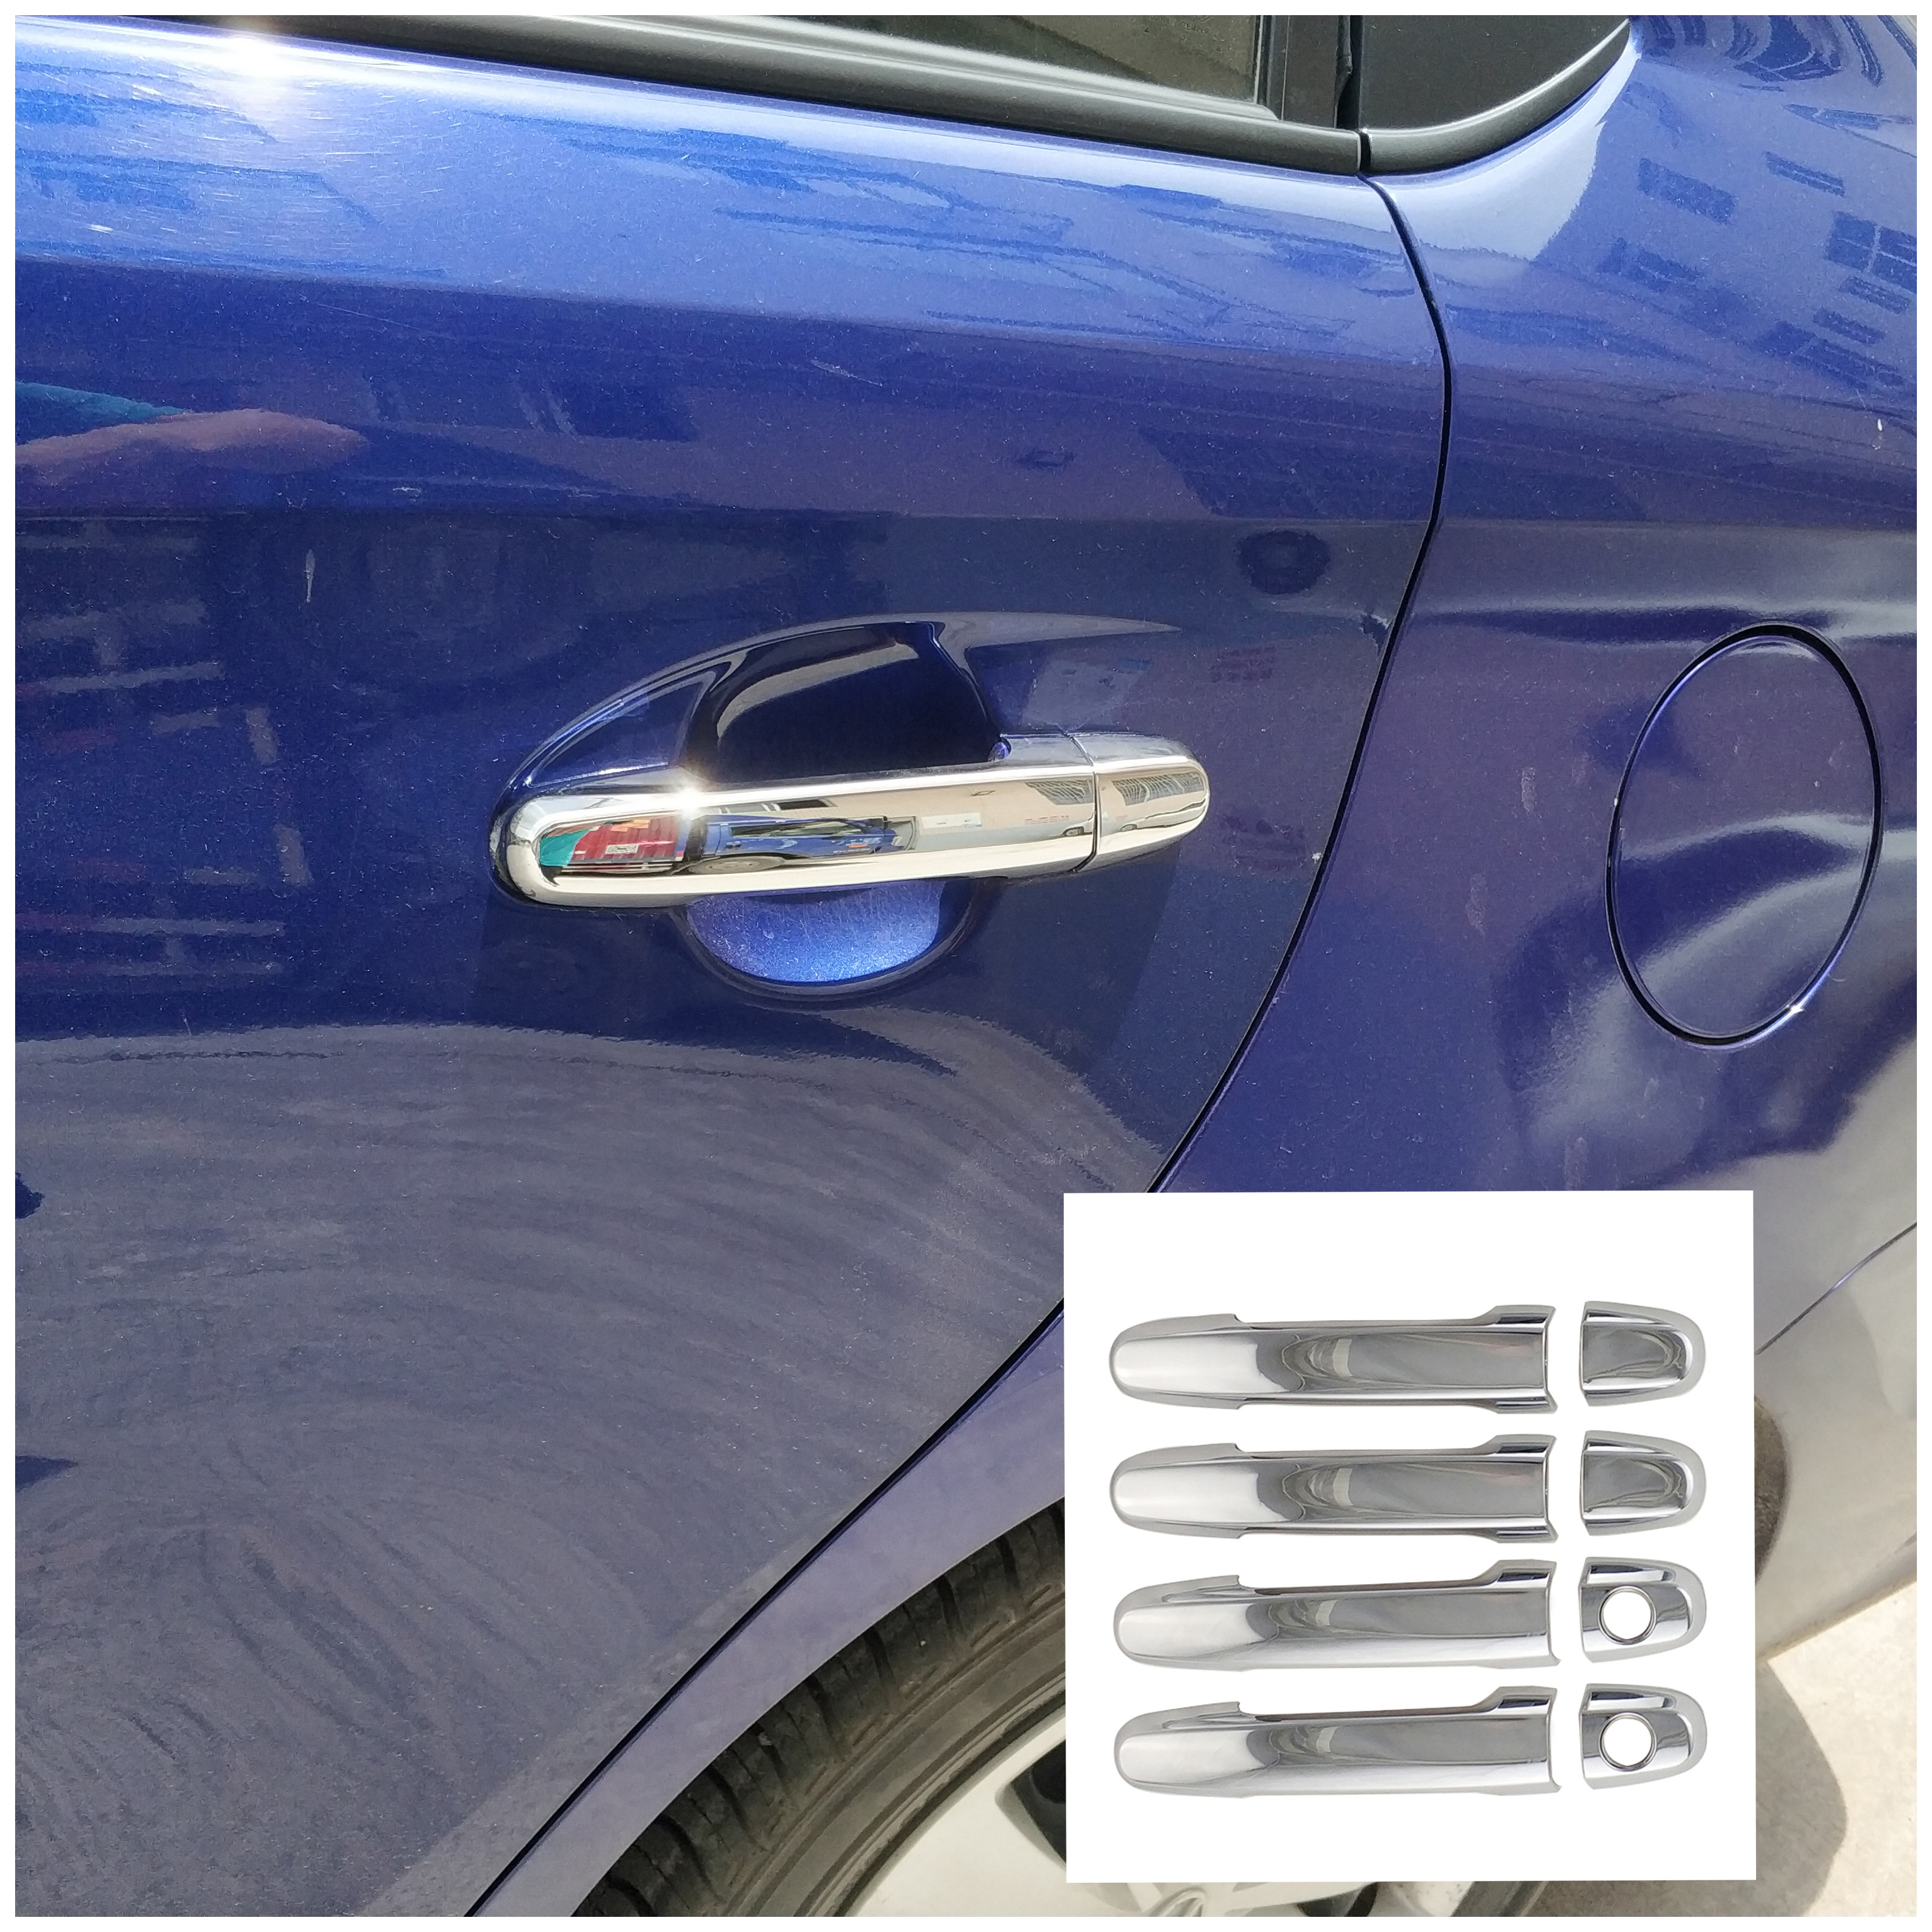 8PCS For TOYOTA RAV4 2000-2005 PROBOX 2002 SUCCEED 2002 Accessories abs Chrome Door Handle Cover Protection(China)